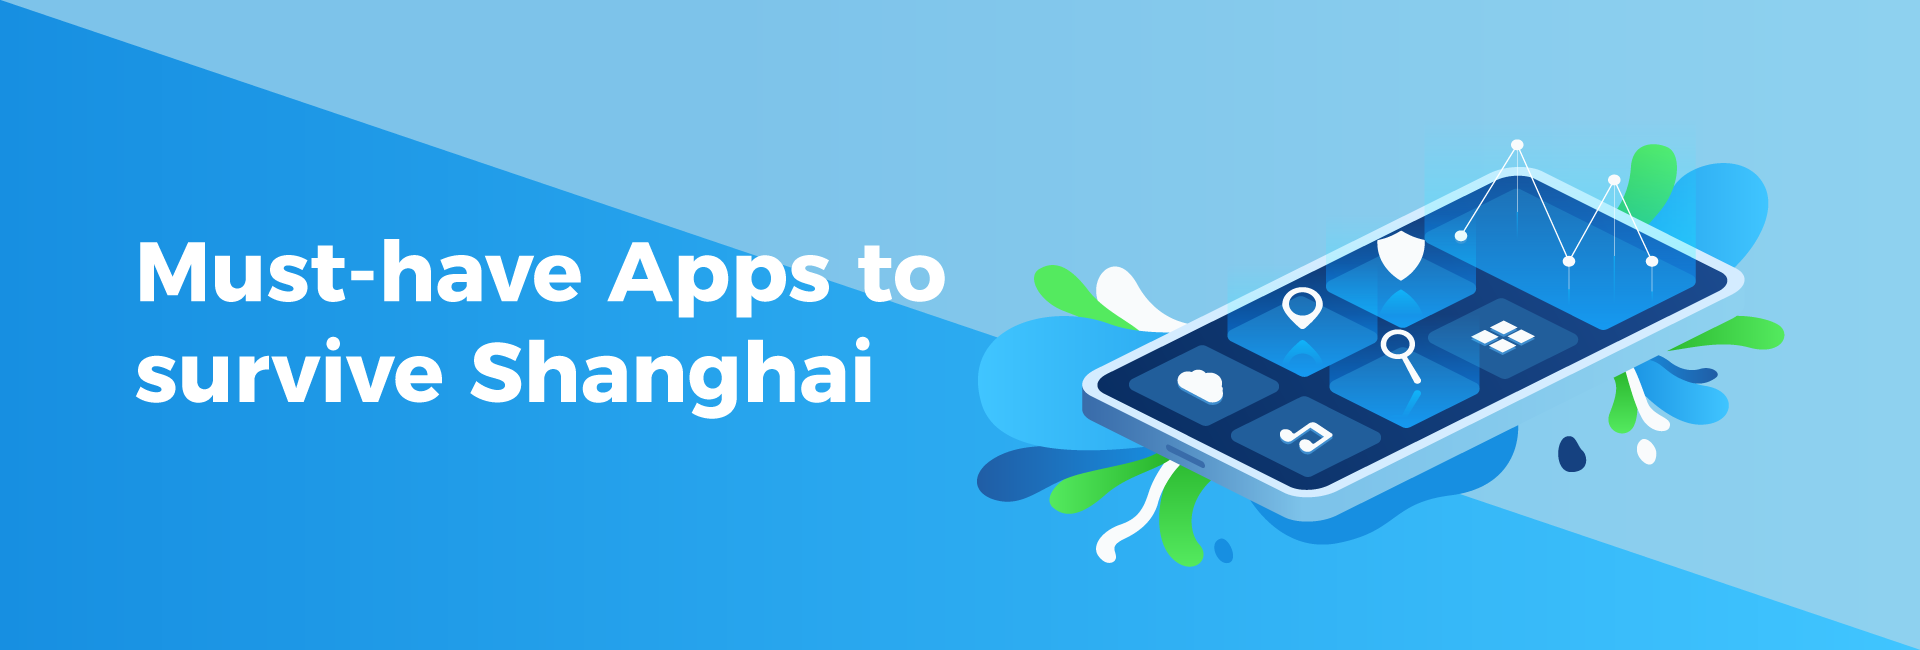 The Essential Apps to Survive in Shanghai as an Expat in 2019